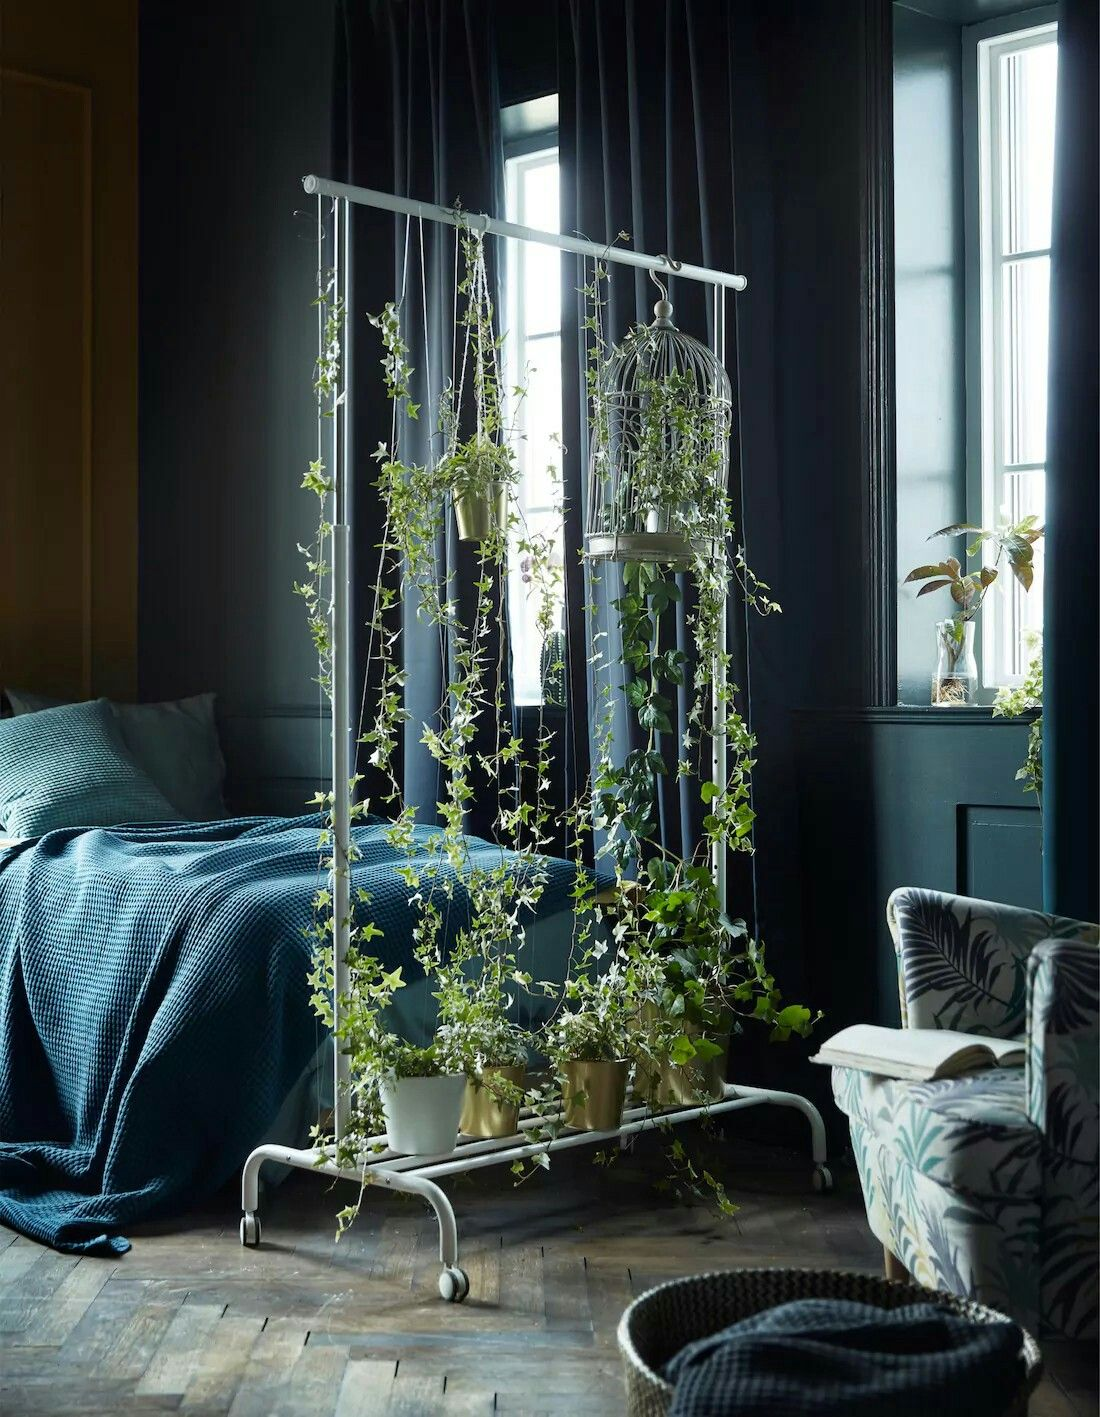 Ikea hack clothing rack into a plant room divider green life